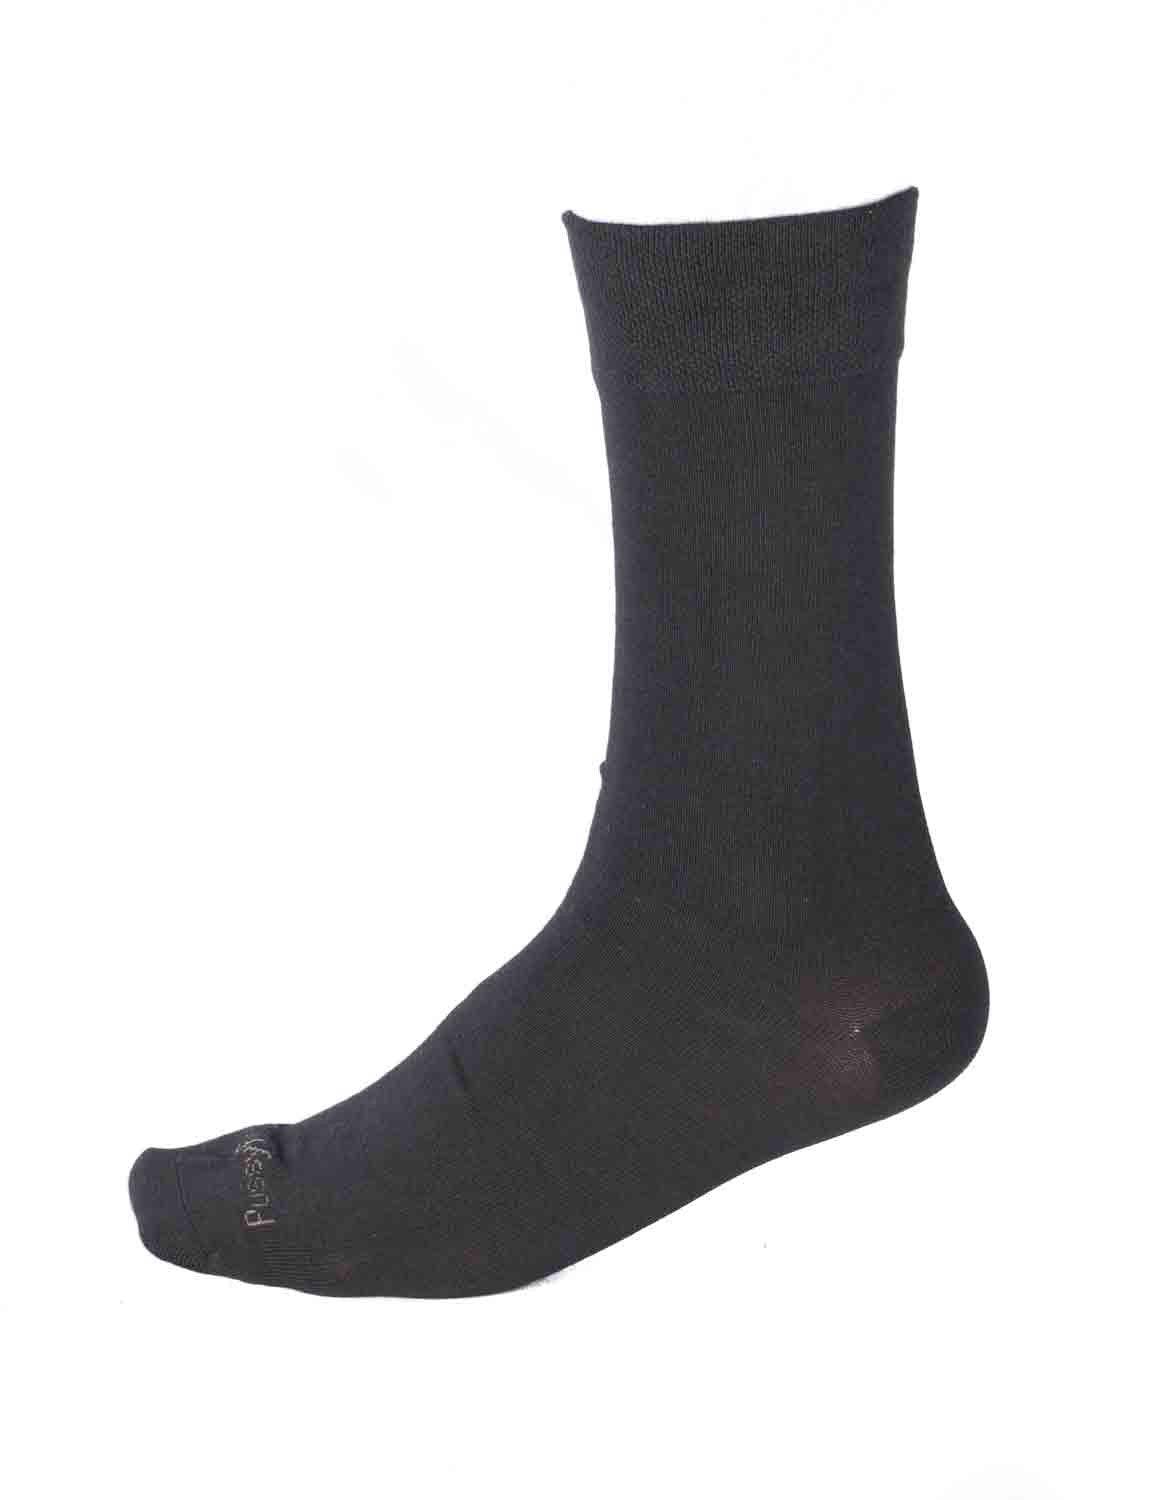 Pussyfoot Non Tight Bamboo/Cotton Health Socks - Black